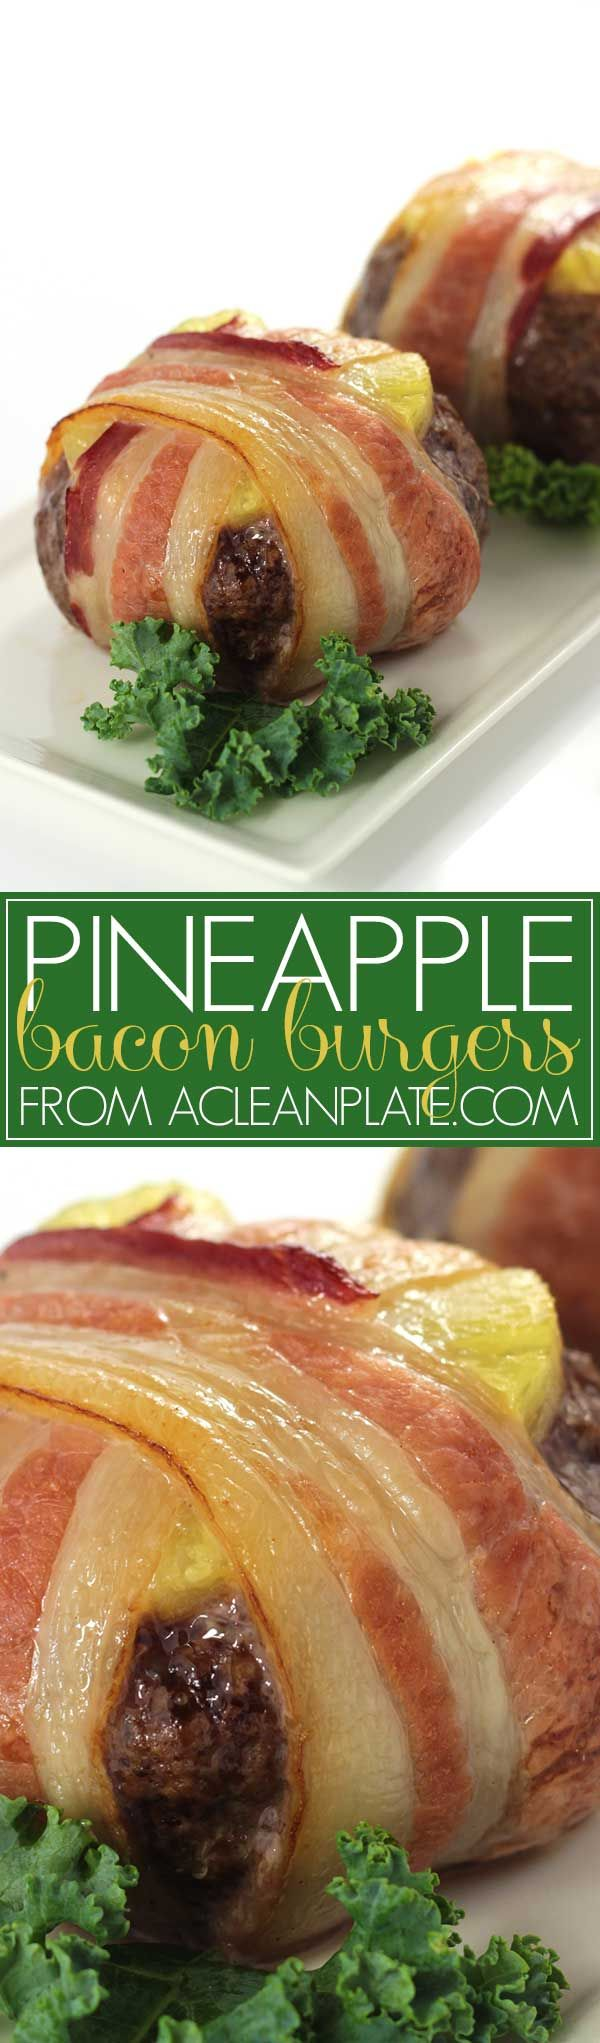 Pineapple Bacon Burgers recipe from acleanplate.com